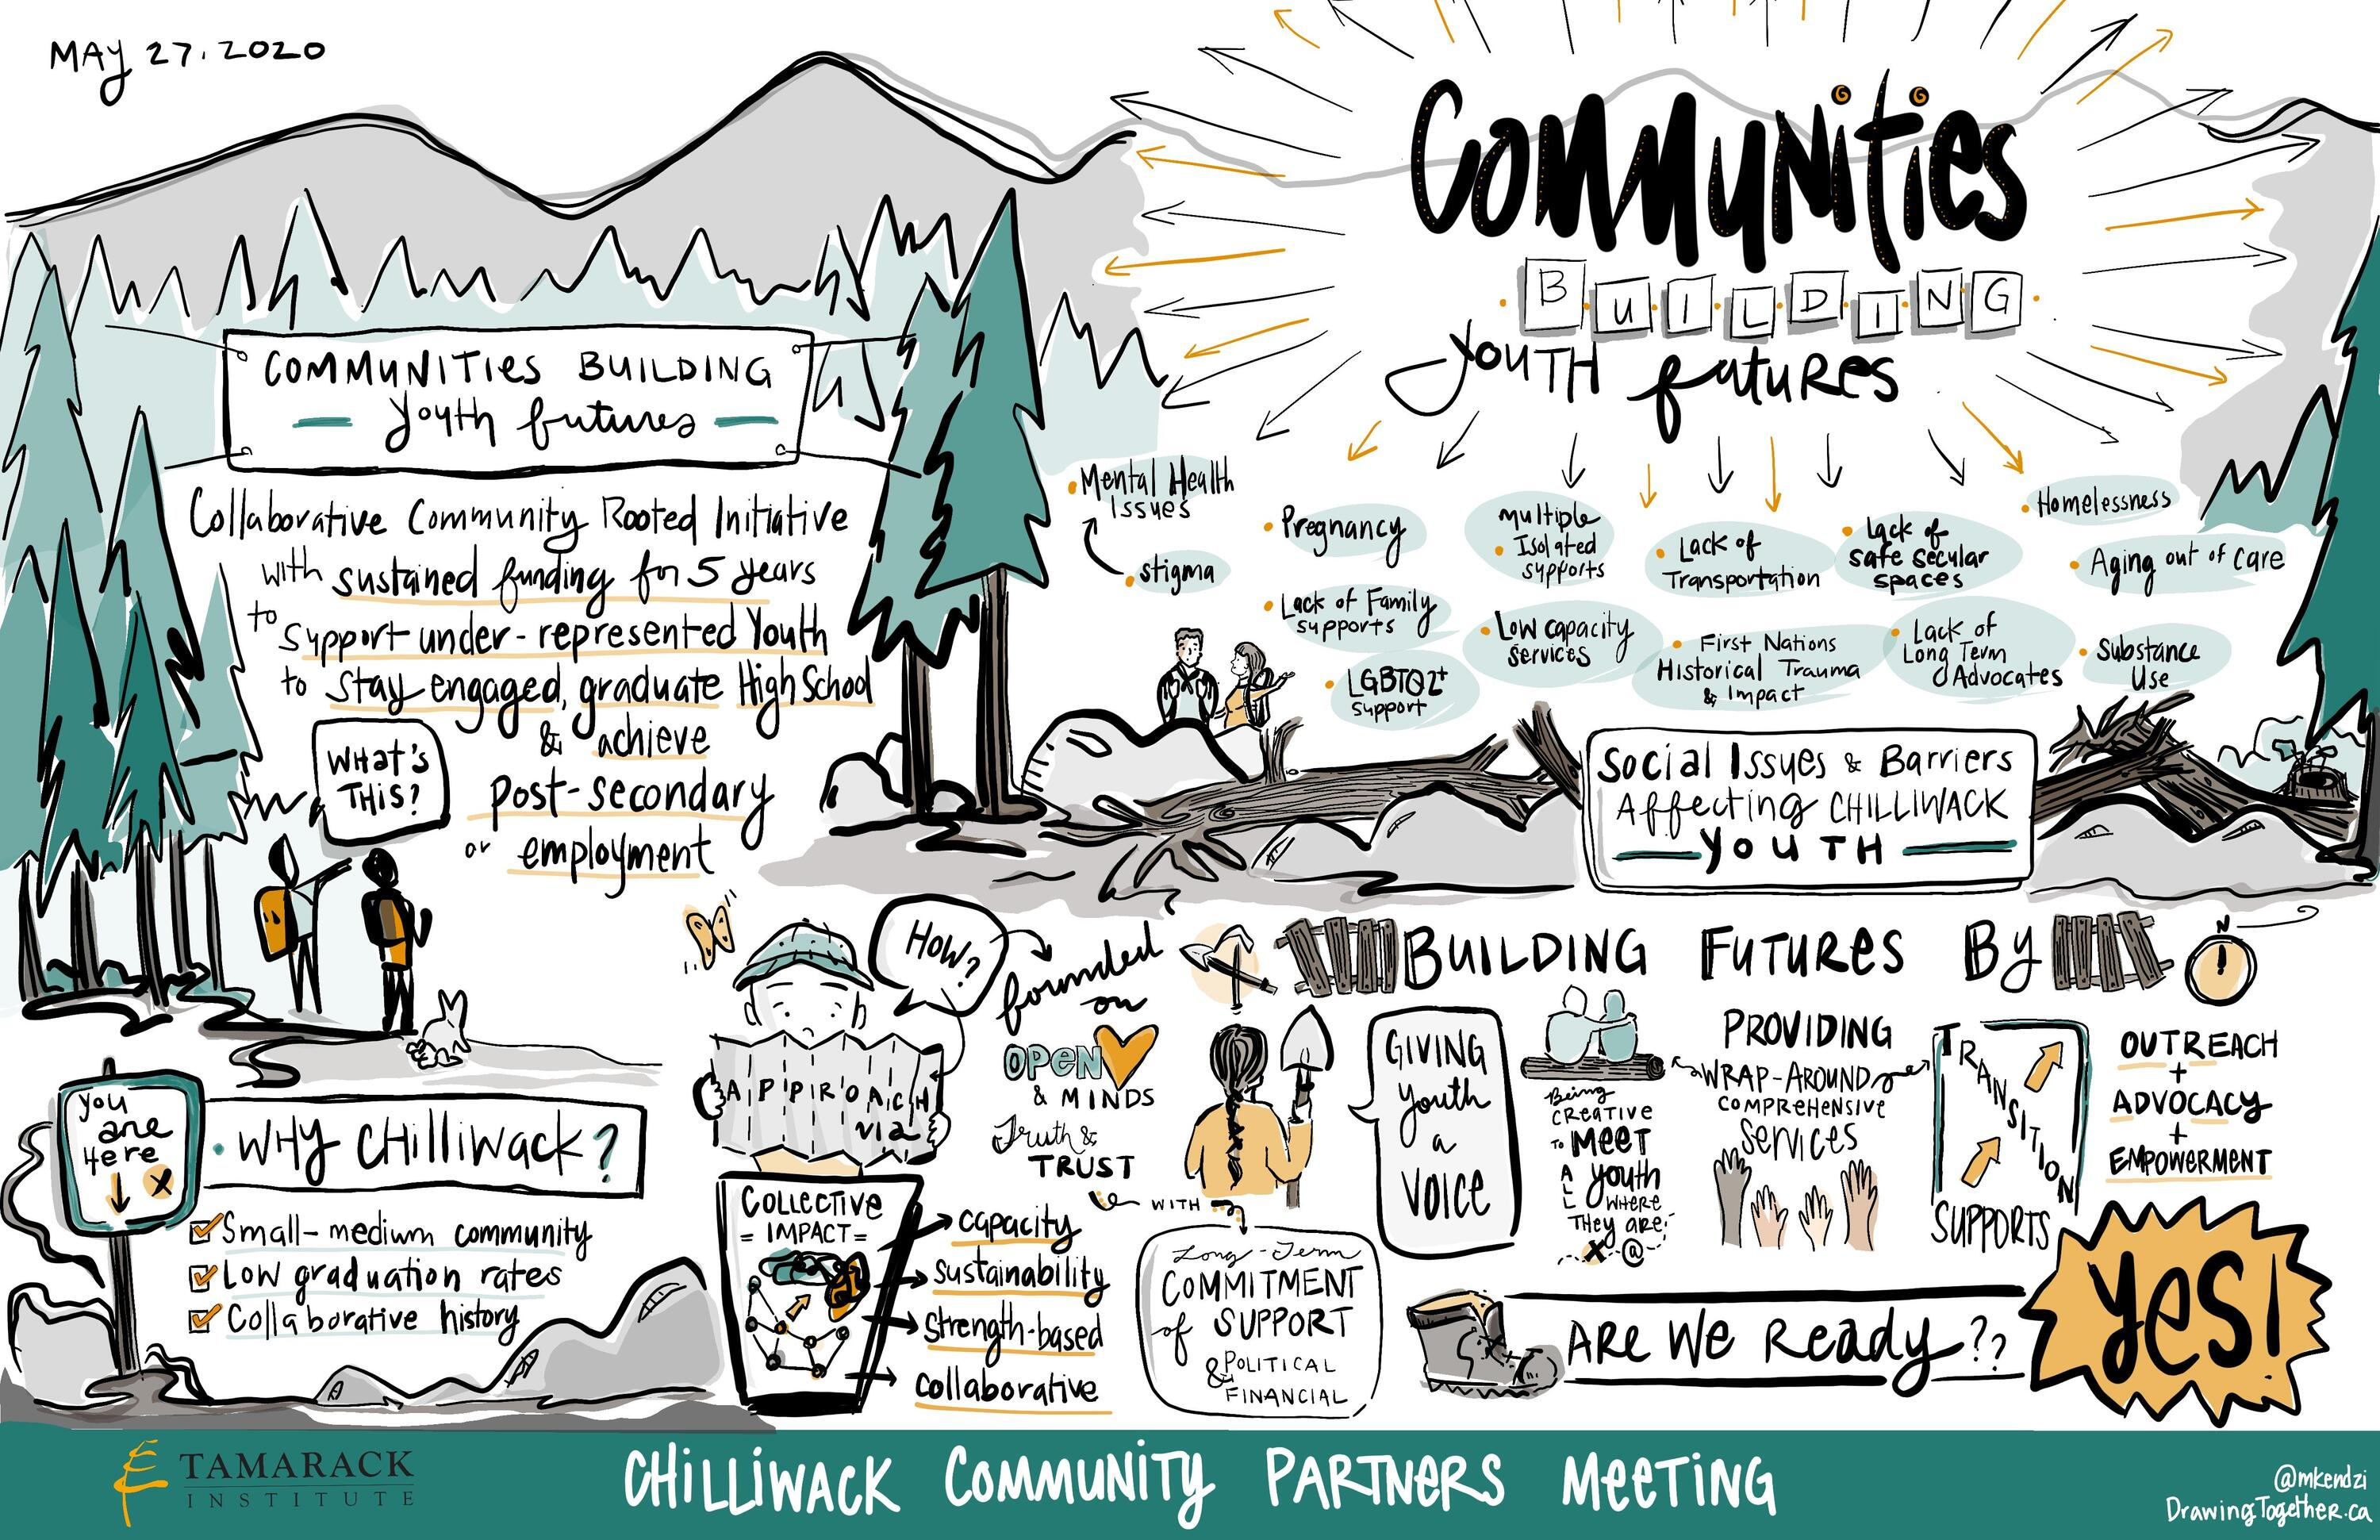 Infographic shared by Tamarack Institute which describes the conversations had by community leaders at their annual summit